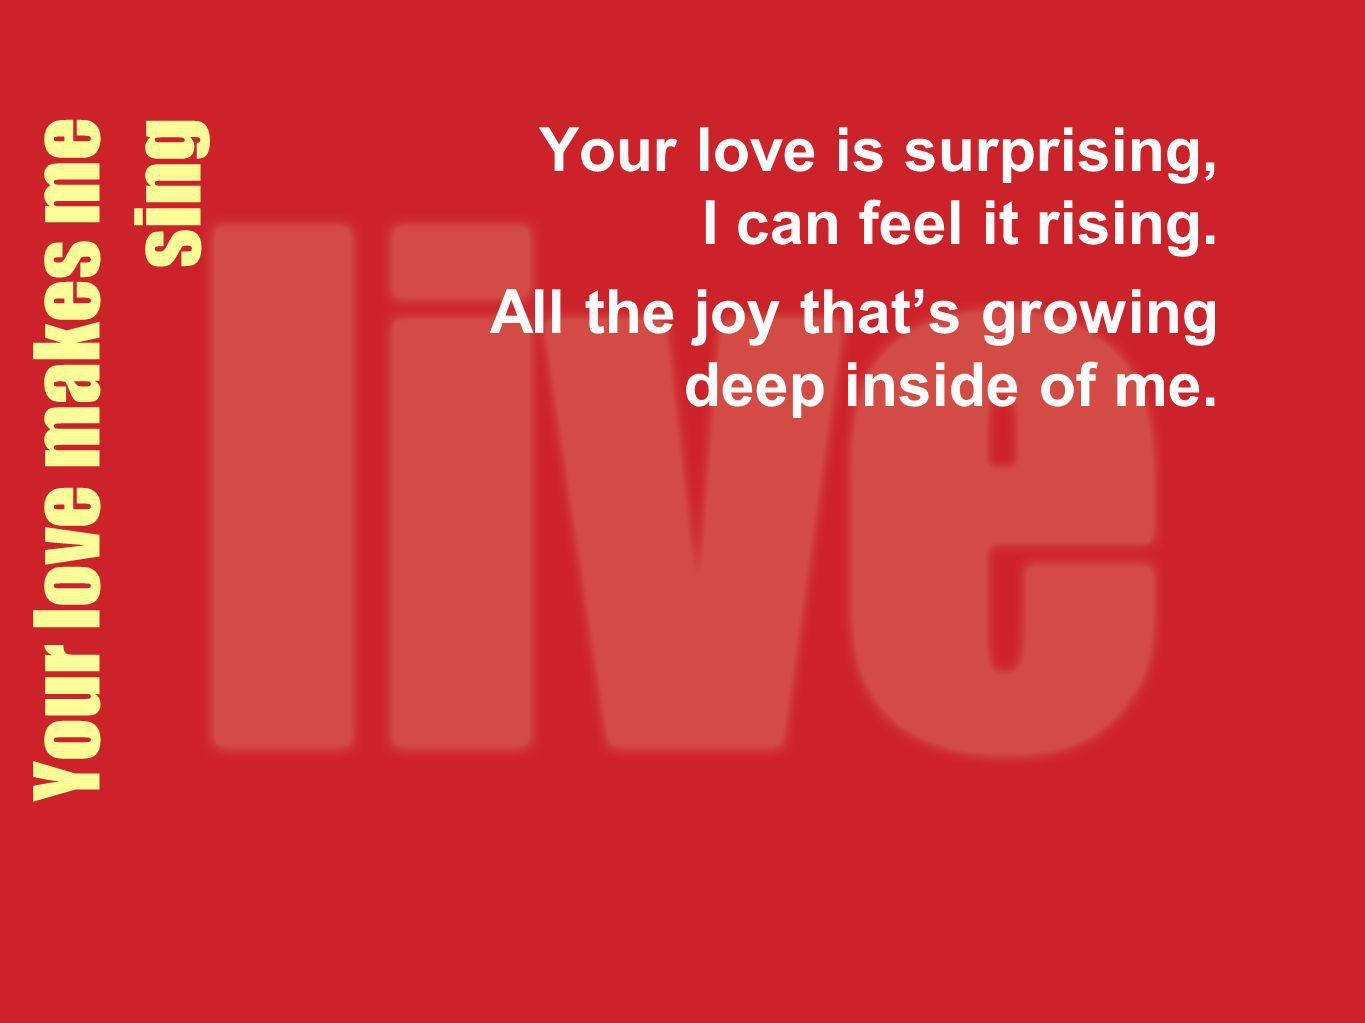 Your love makes me sing Your love is surprising, I can feel it rising.